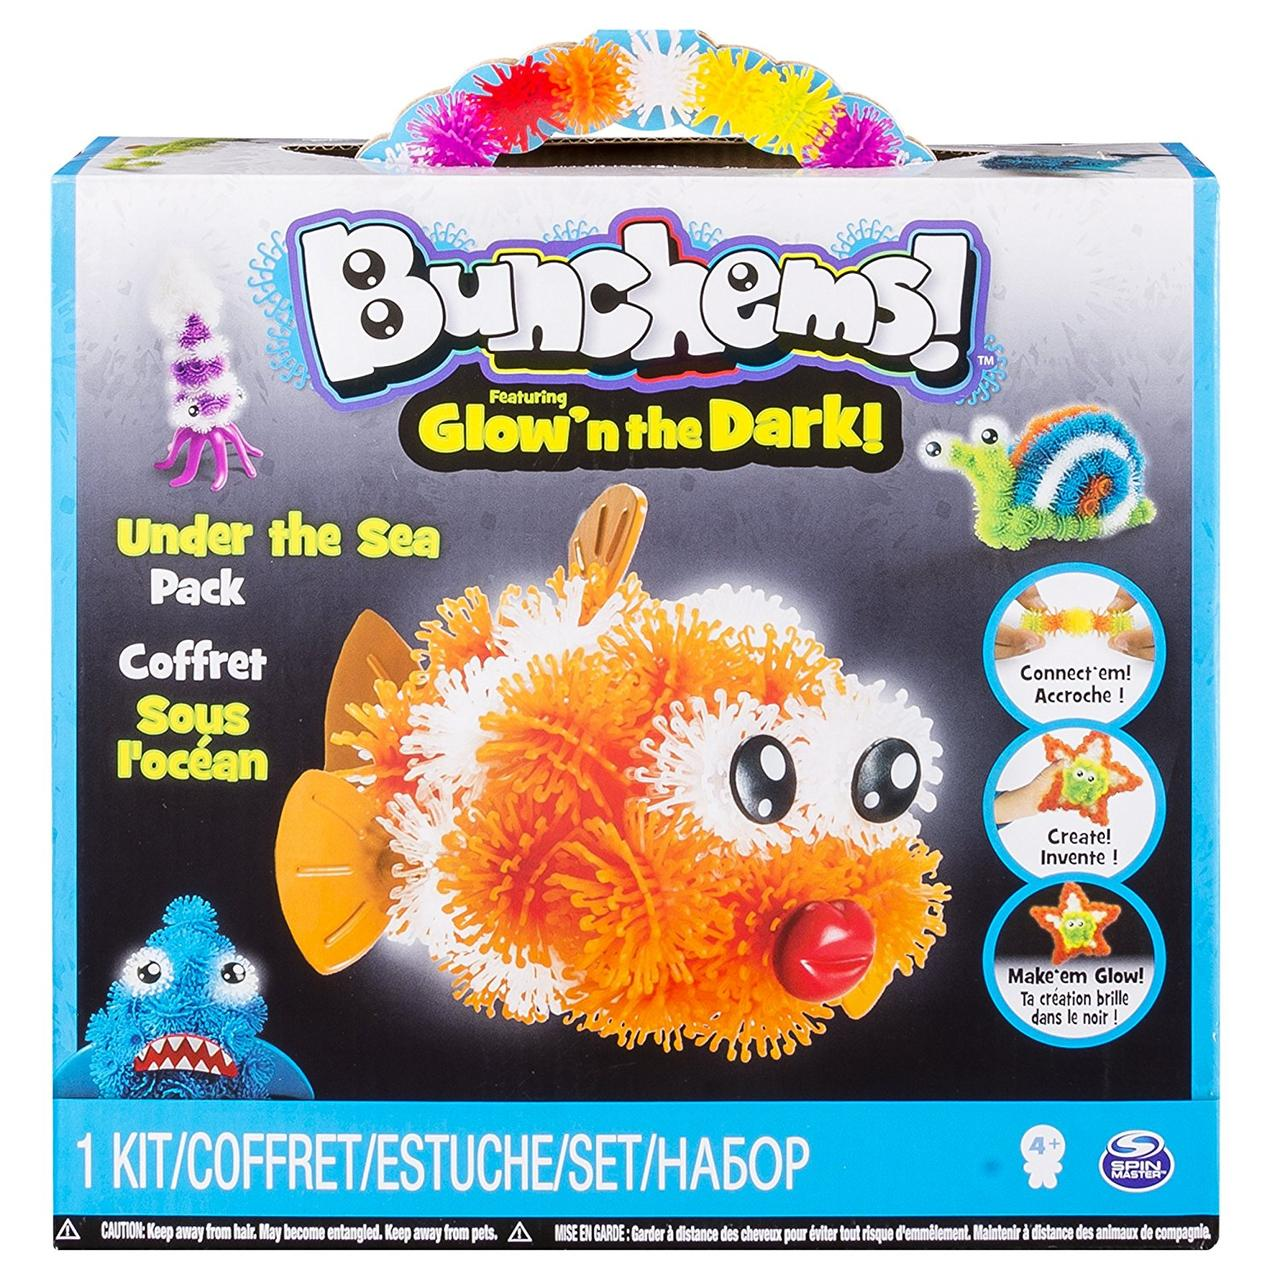 Конструктор Банчемс 200+ светящийся, Bunchems Glow'n the Dark-Under The Sea Pack, Spin Master, Оригинал из США